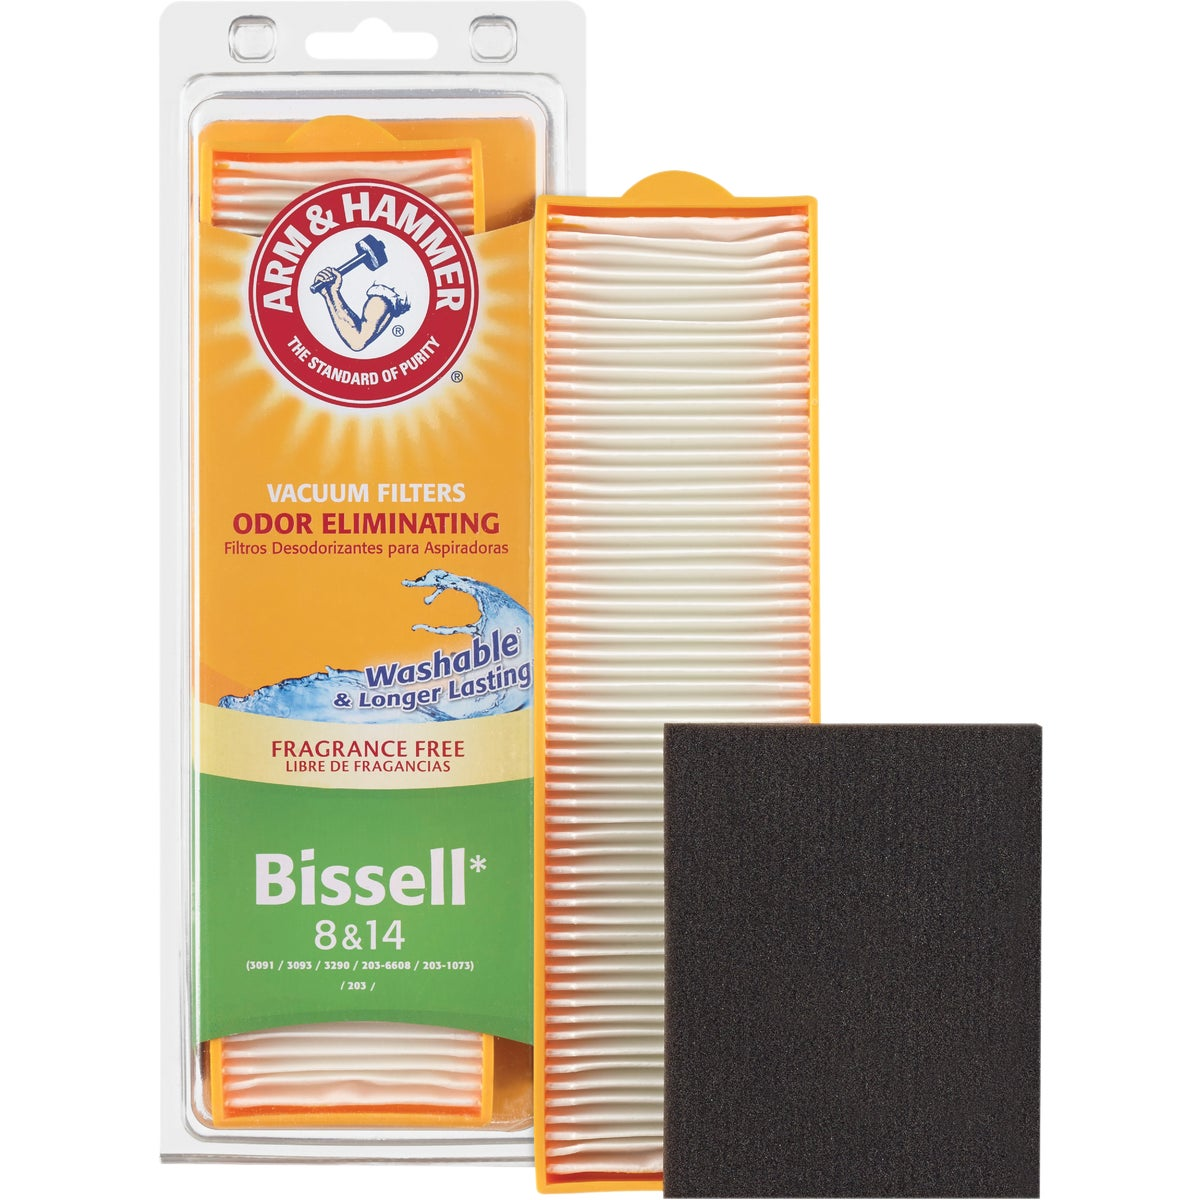 Bissell No. 8 & 14 Vacuum Filter, 66808A-4